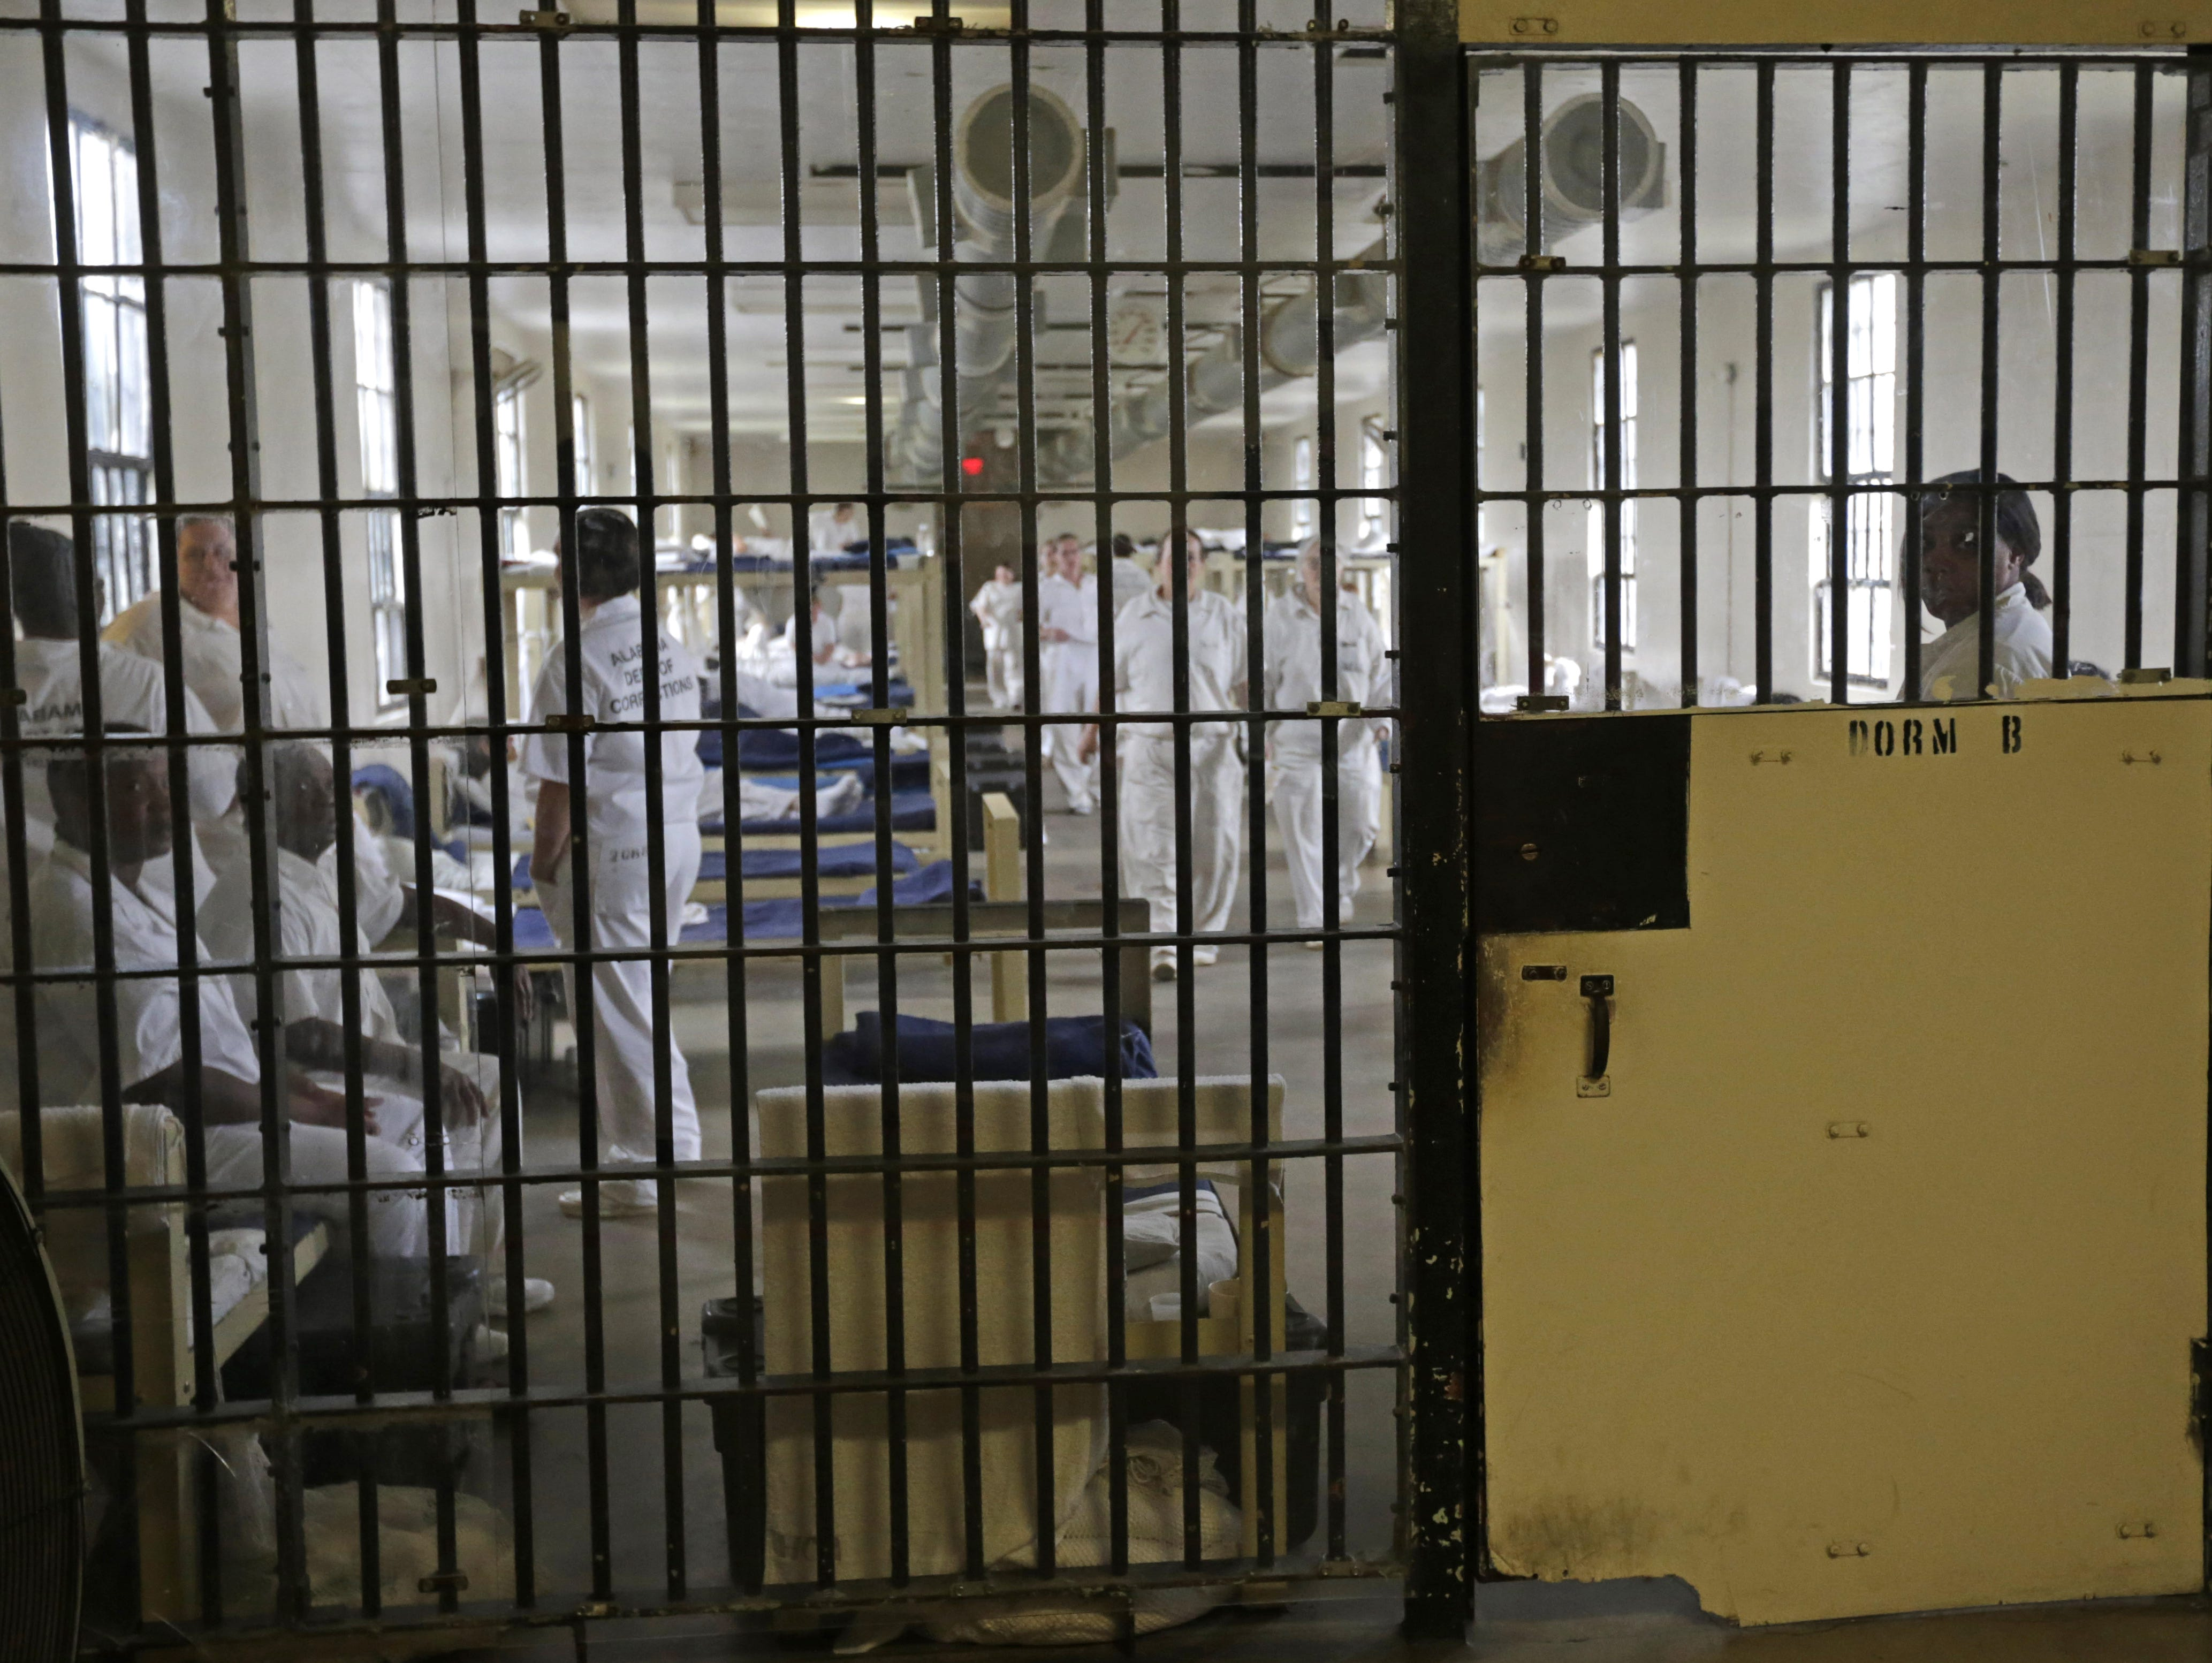 Vote on FIRST STEP Act to reform 'out of whack' prison sentences